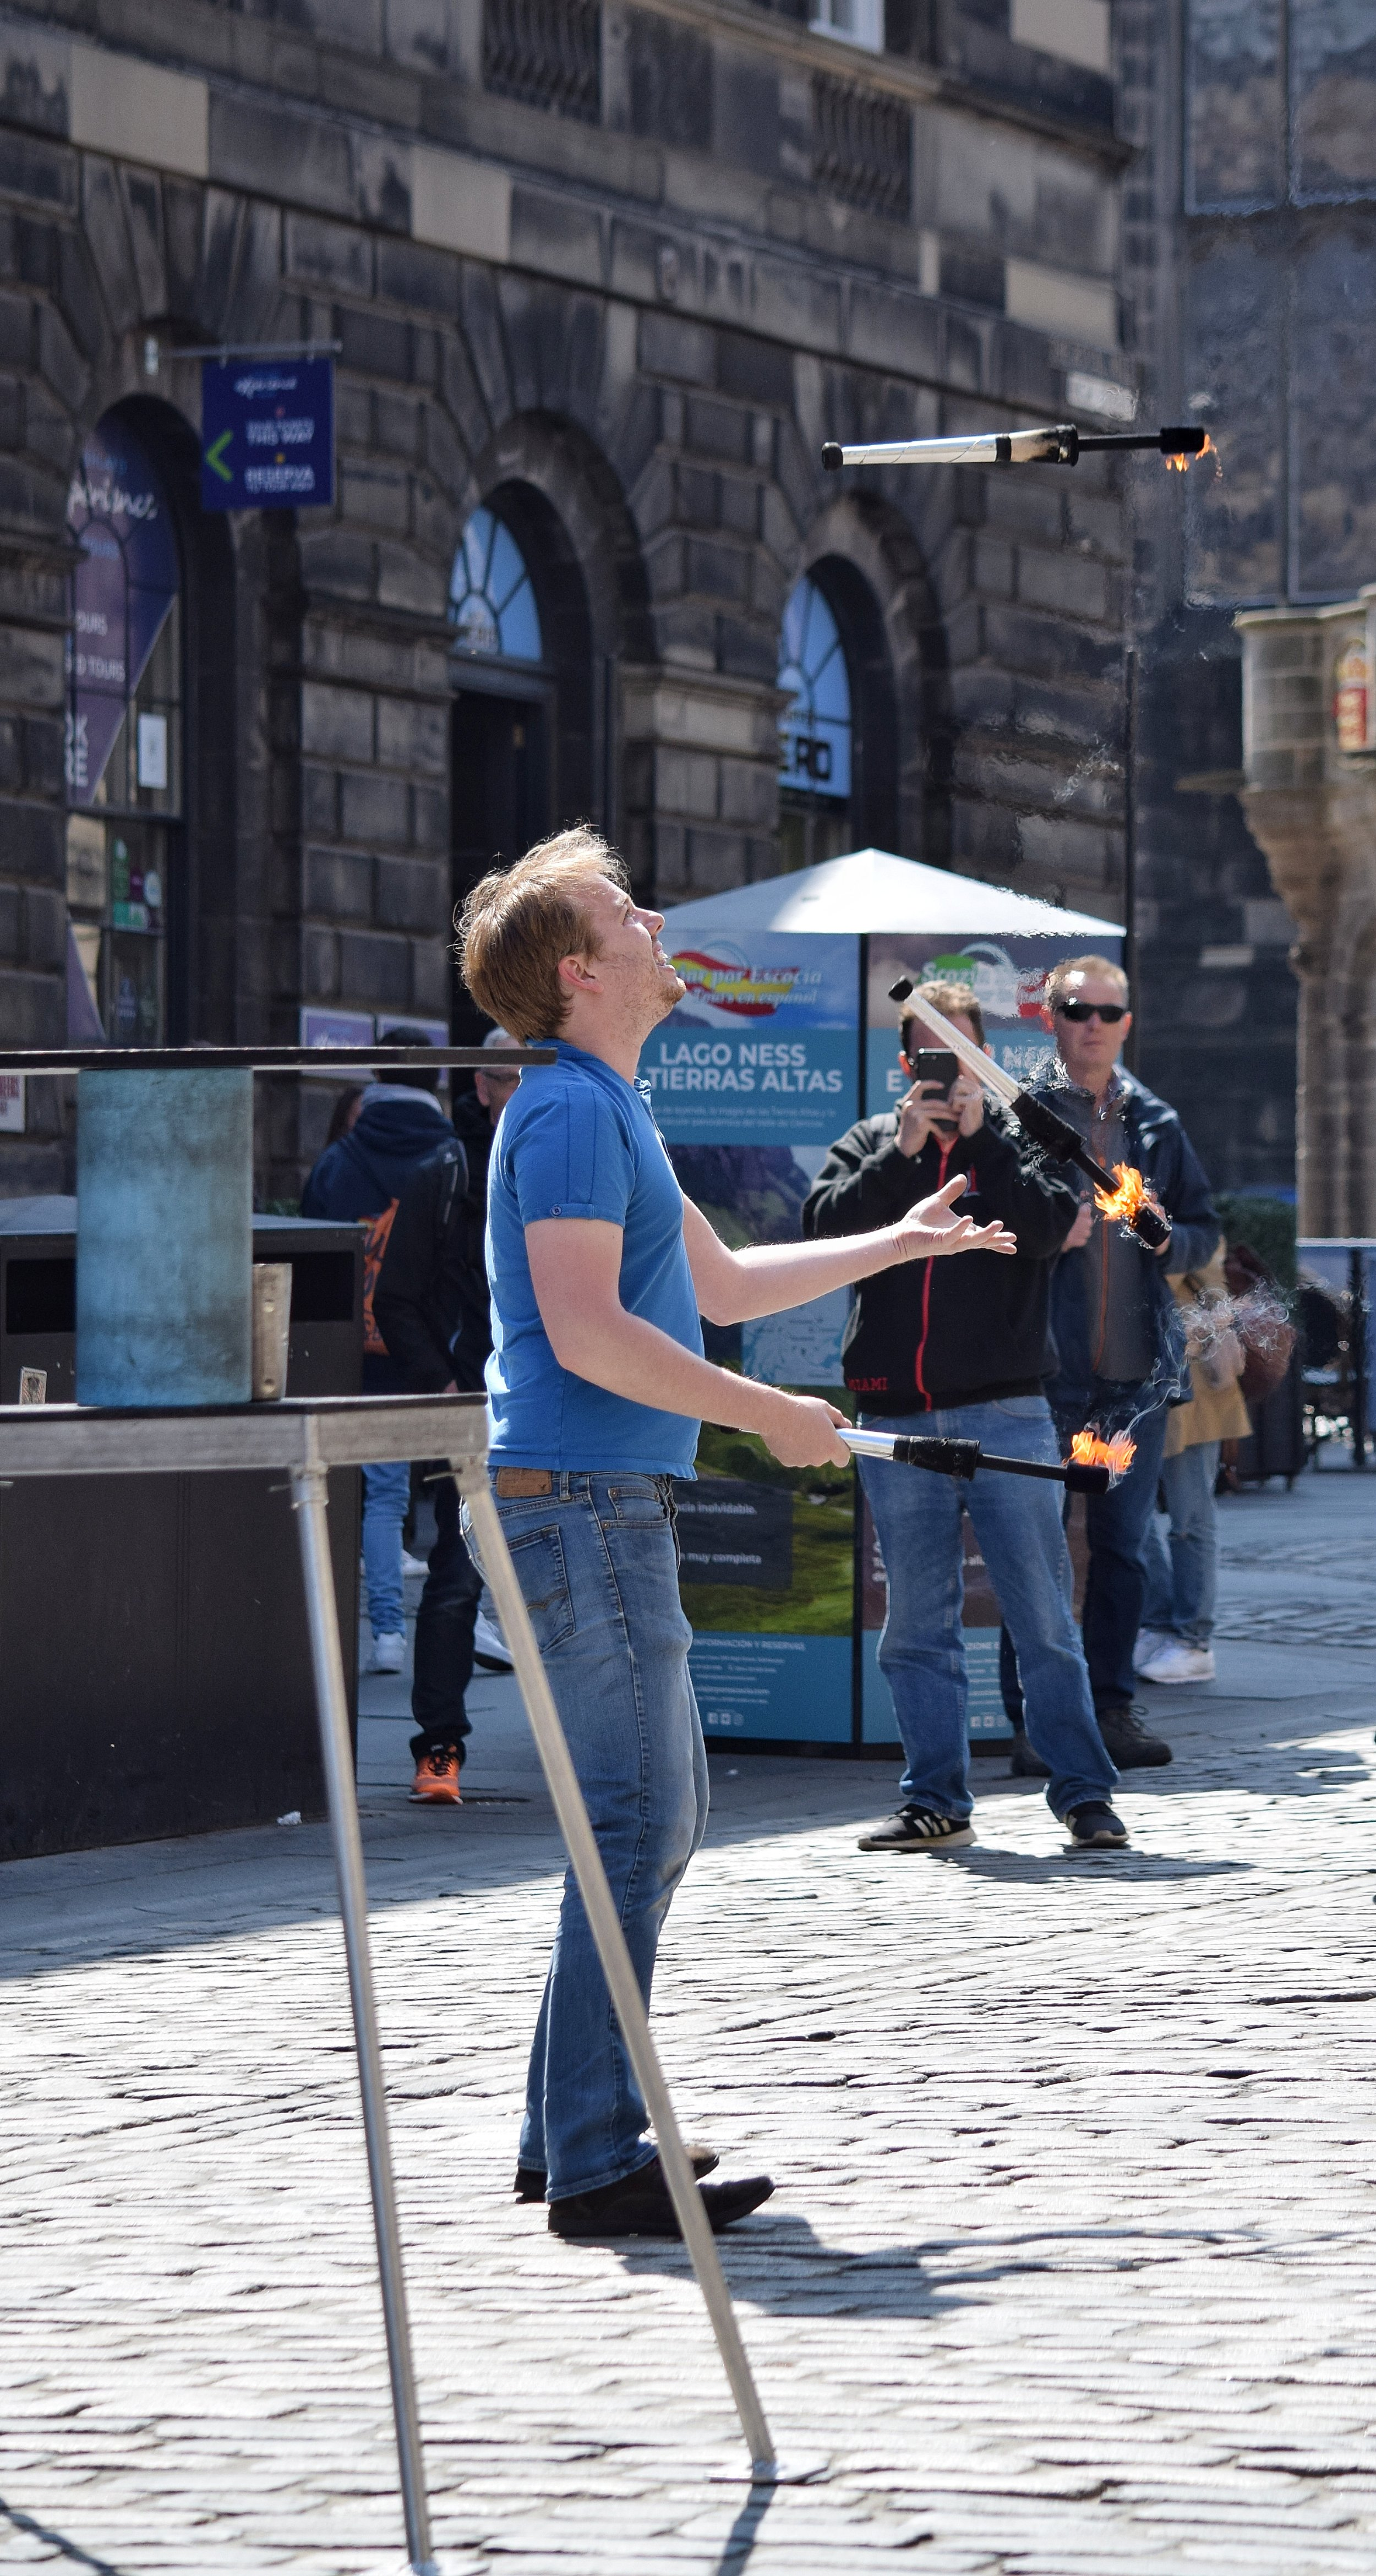 Playing With Fire (The Royal Mile, Edinburgh, Scotland)